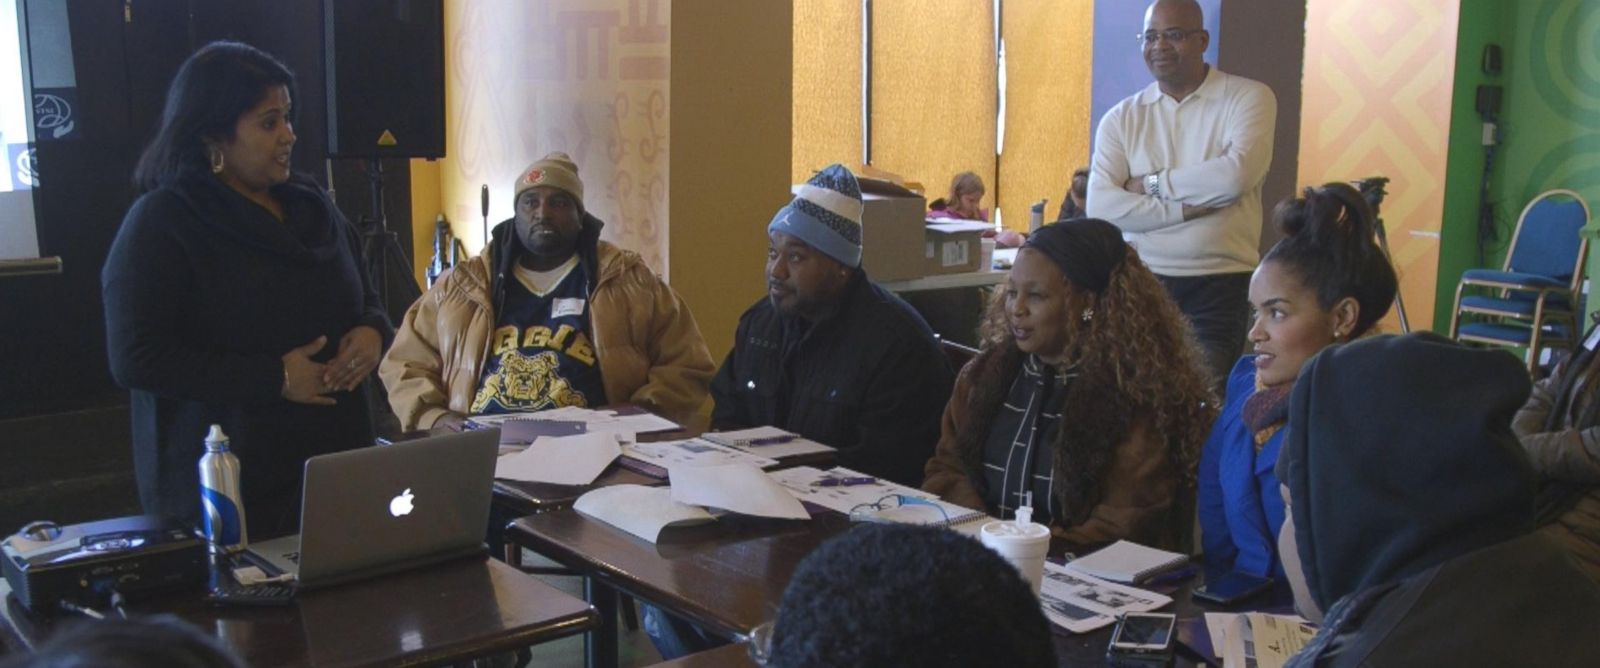 PHOTO: Chicago residents are learning how to treat traumatic injuries among rising rates of violence and shootings.